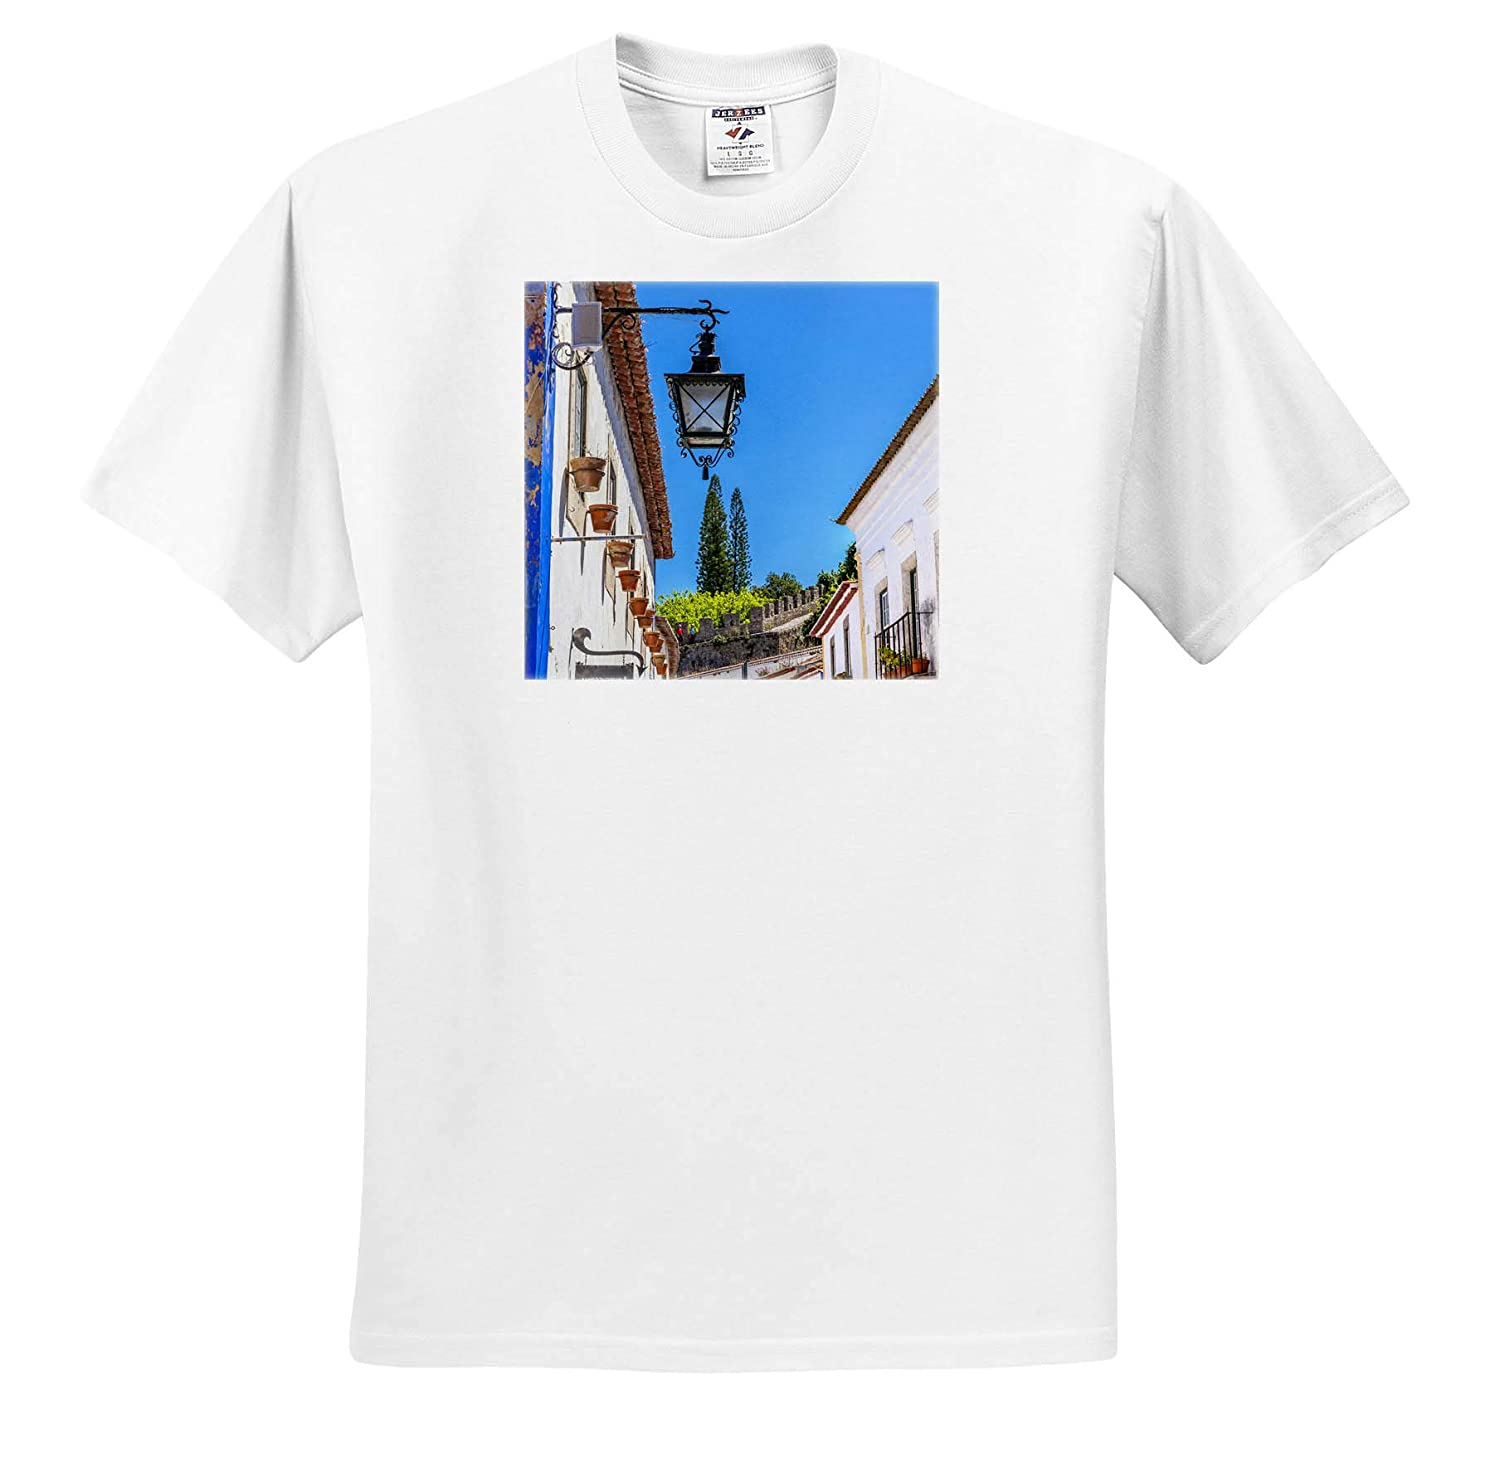 ts/_313836 - Adult T-Shirt XL Portugal Portugal 3dRose Danita Delimont Obidos Medieval Town